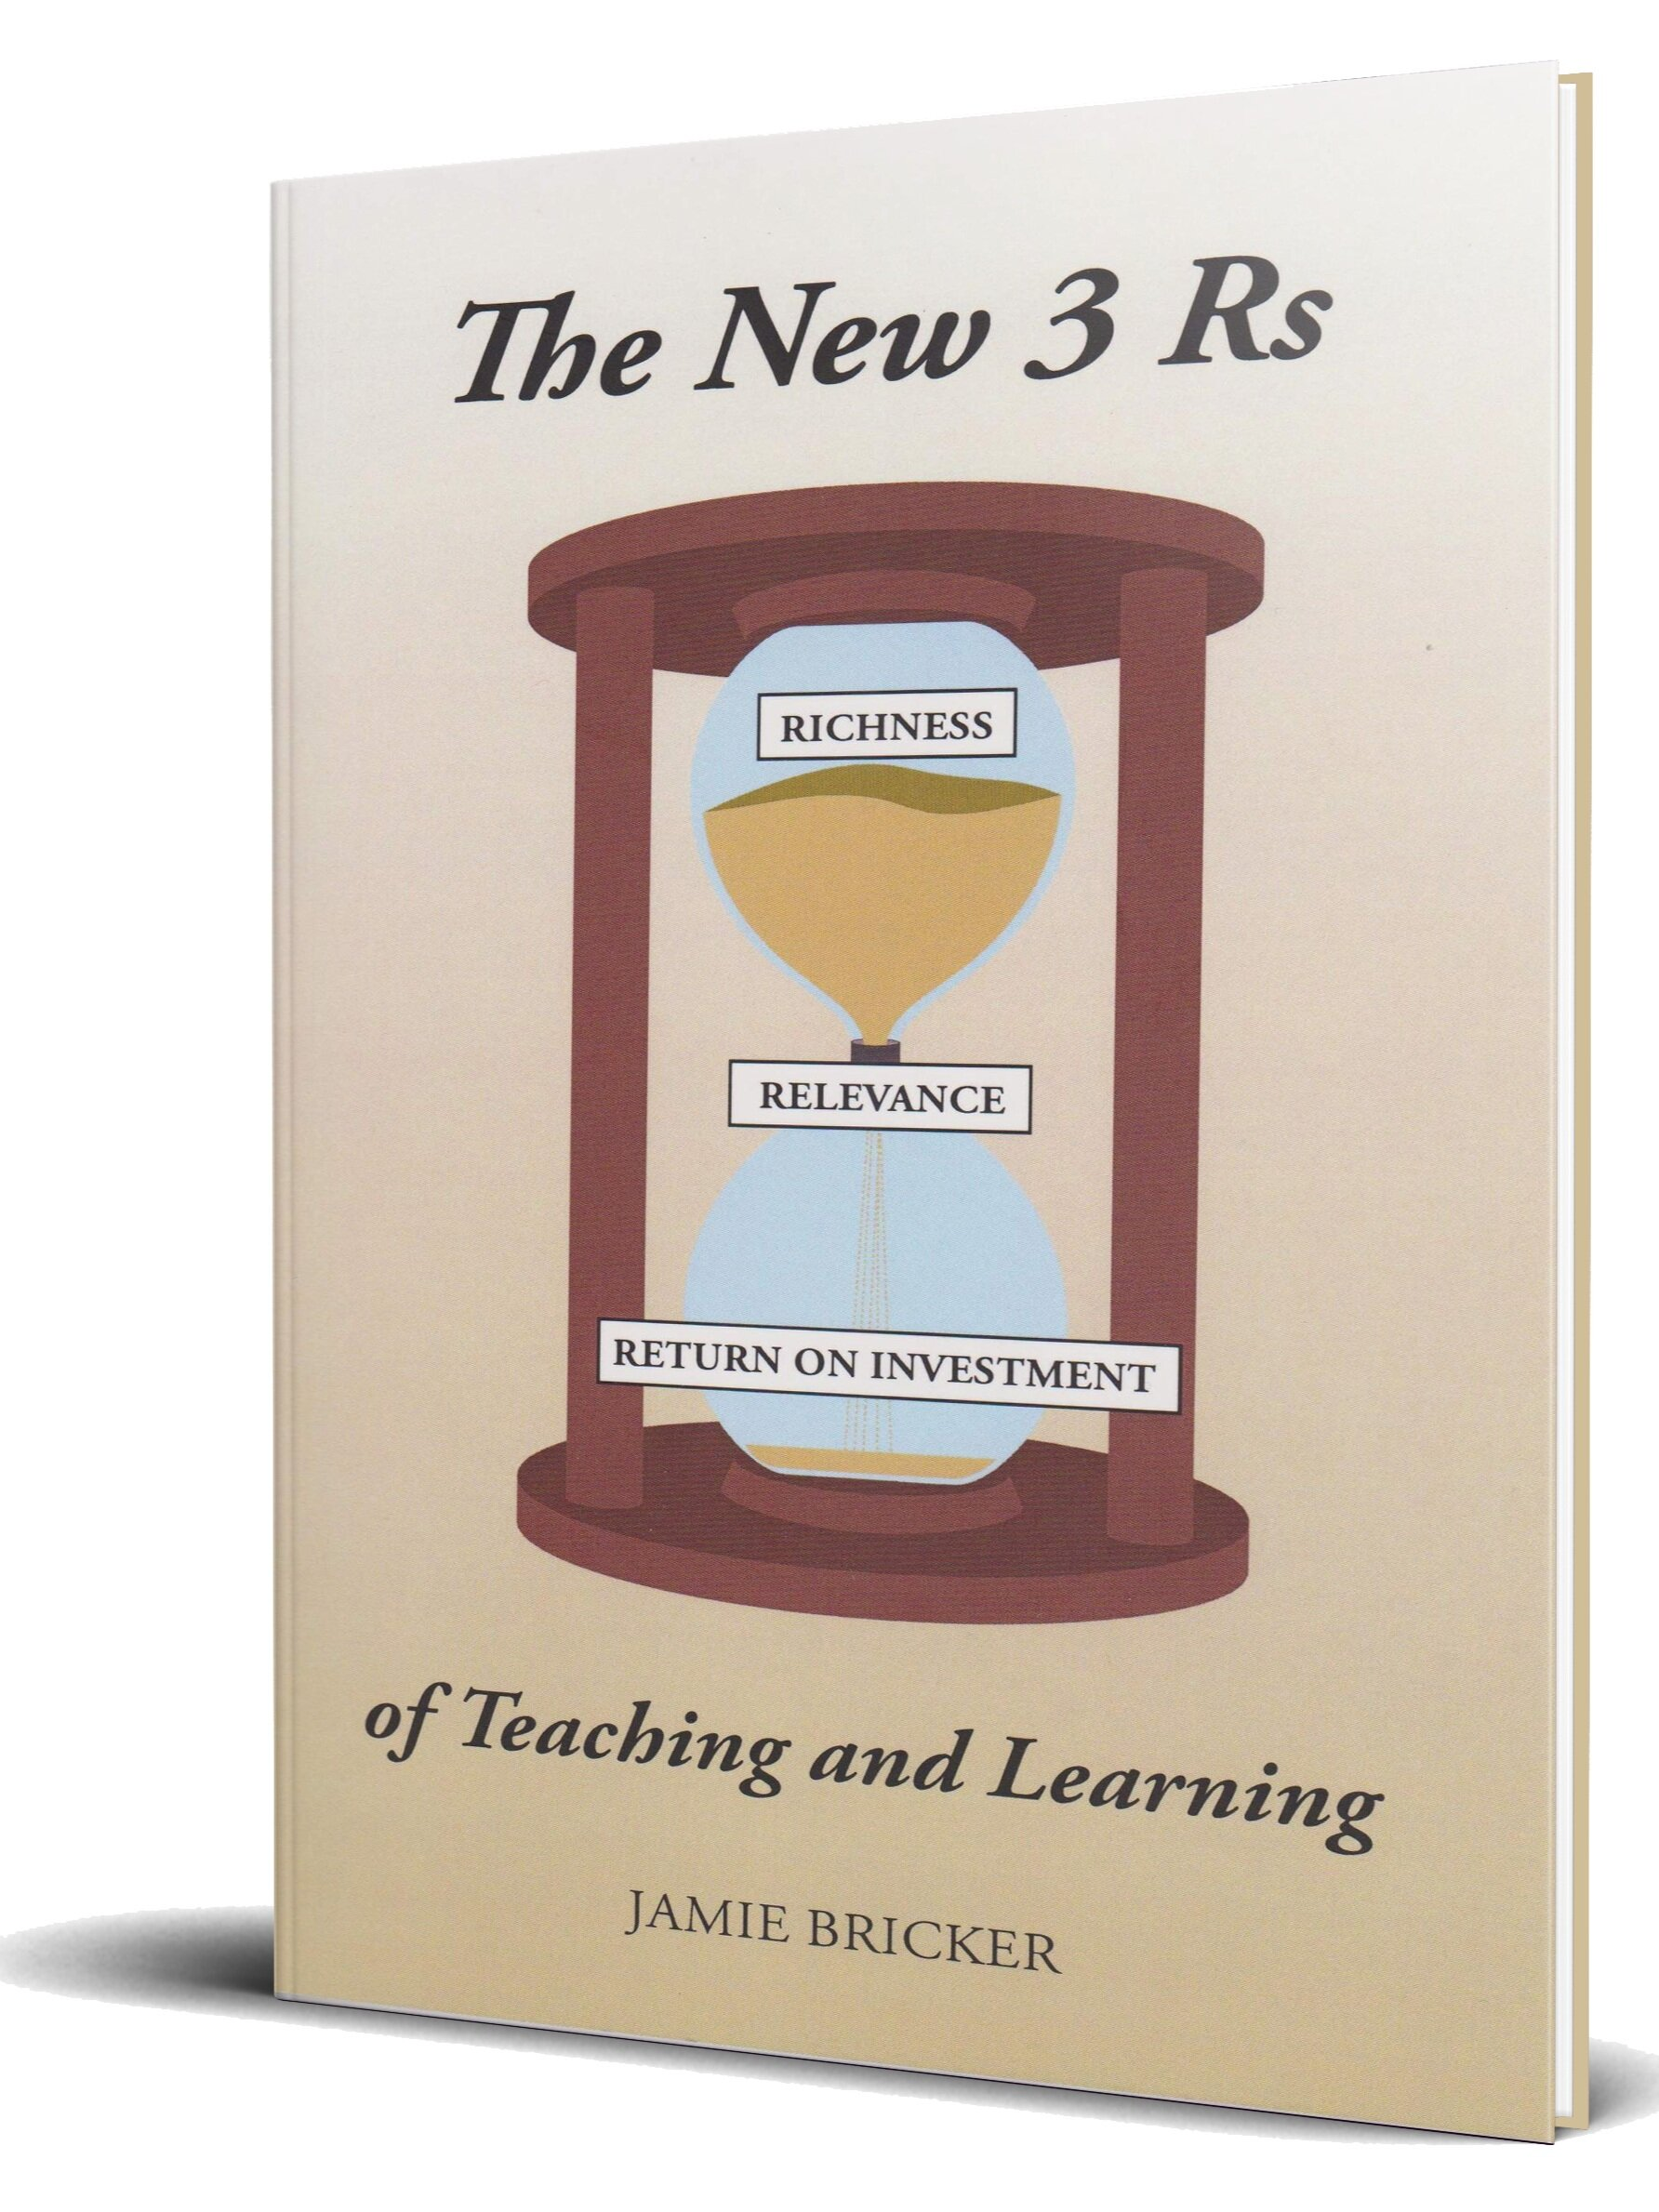 The New 3 Rs of Teaching and Learning - Click here to receive a copy.